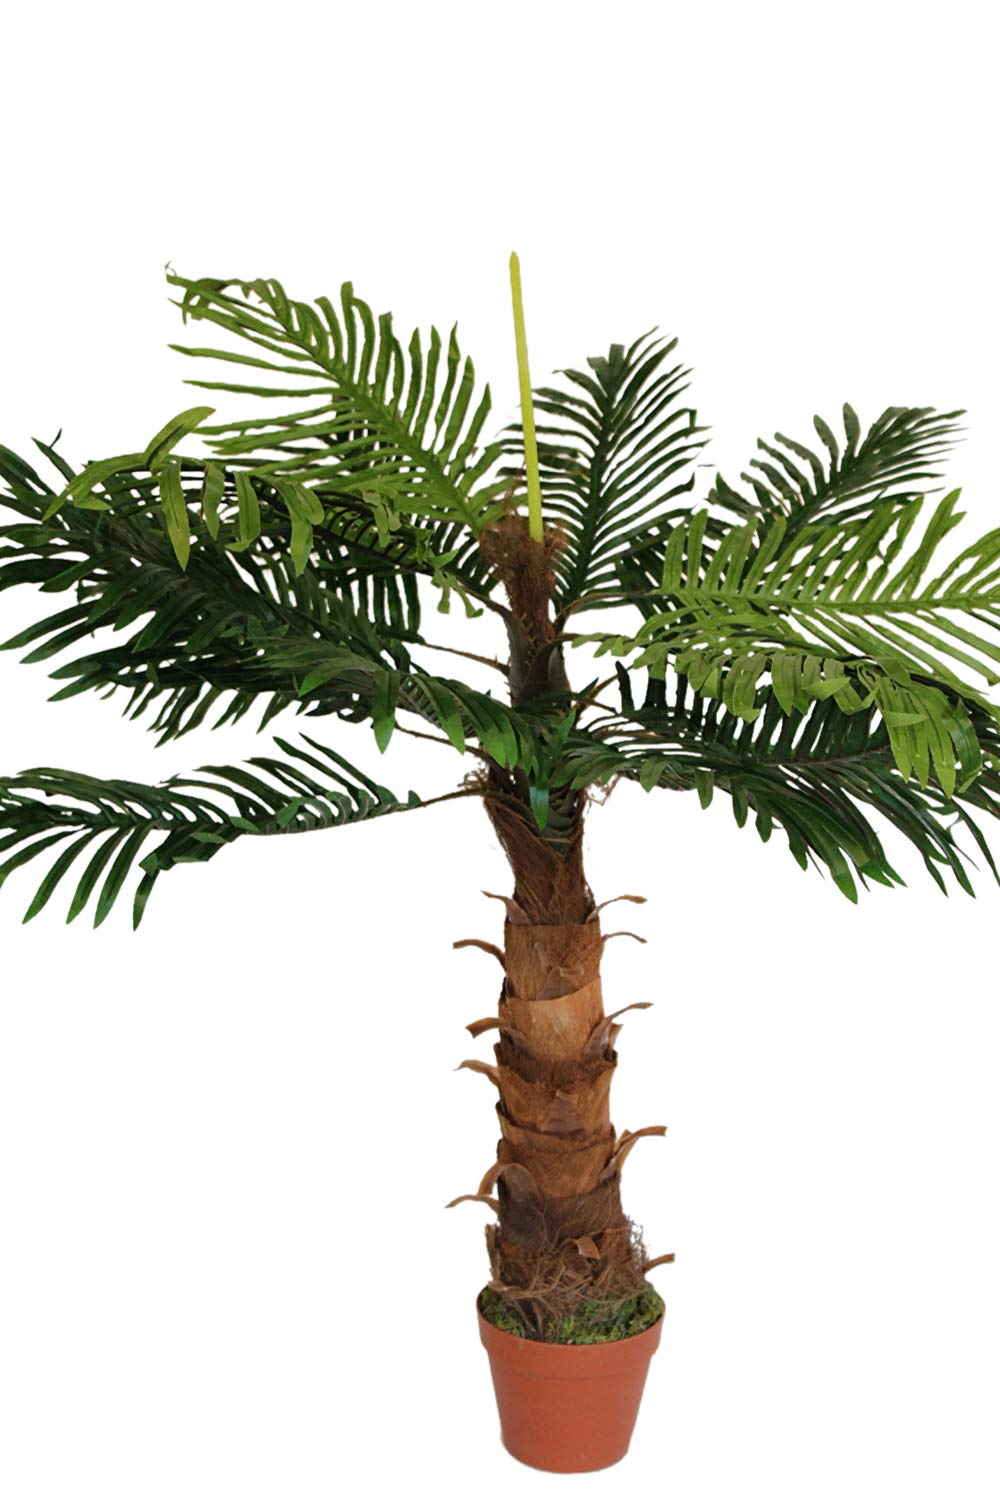 Artificial Plants - Artificial Coco Palm Tree 1m Tall With Pot Olive Grove